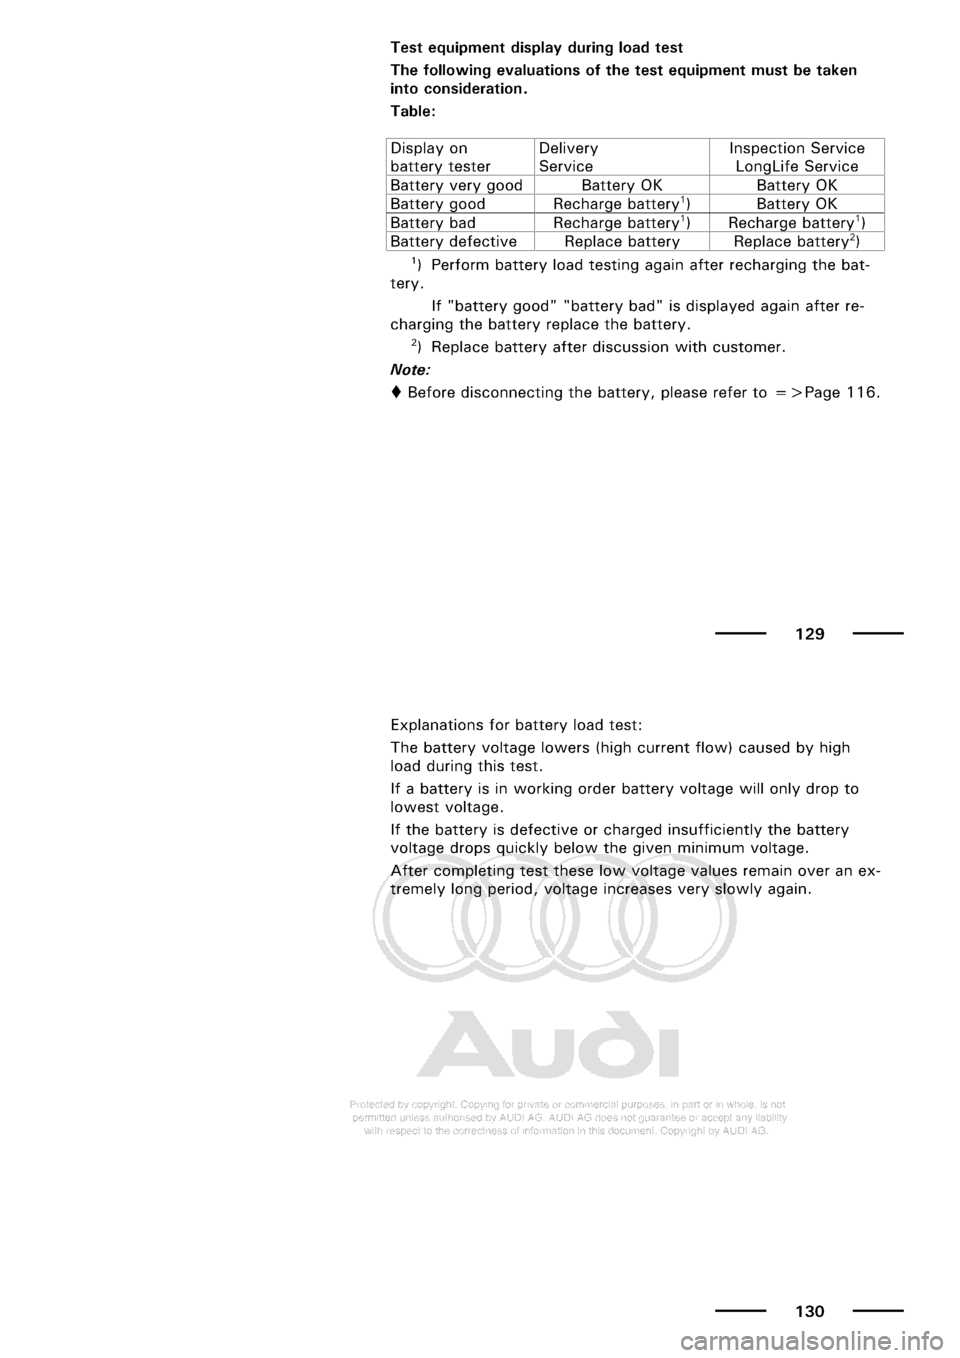 AUDI A3 1997 8L / 1.G Maintenance Repair Manual